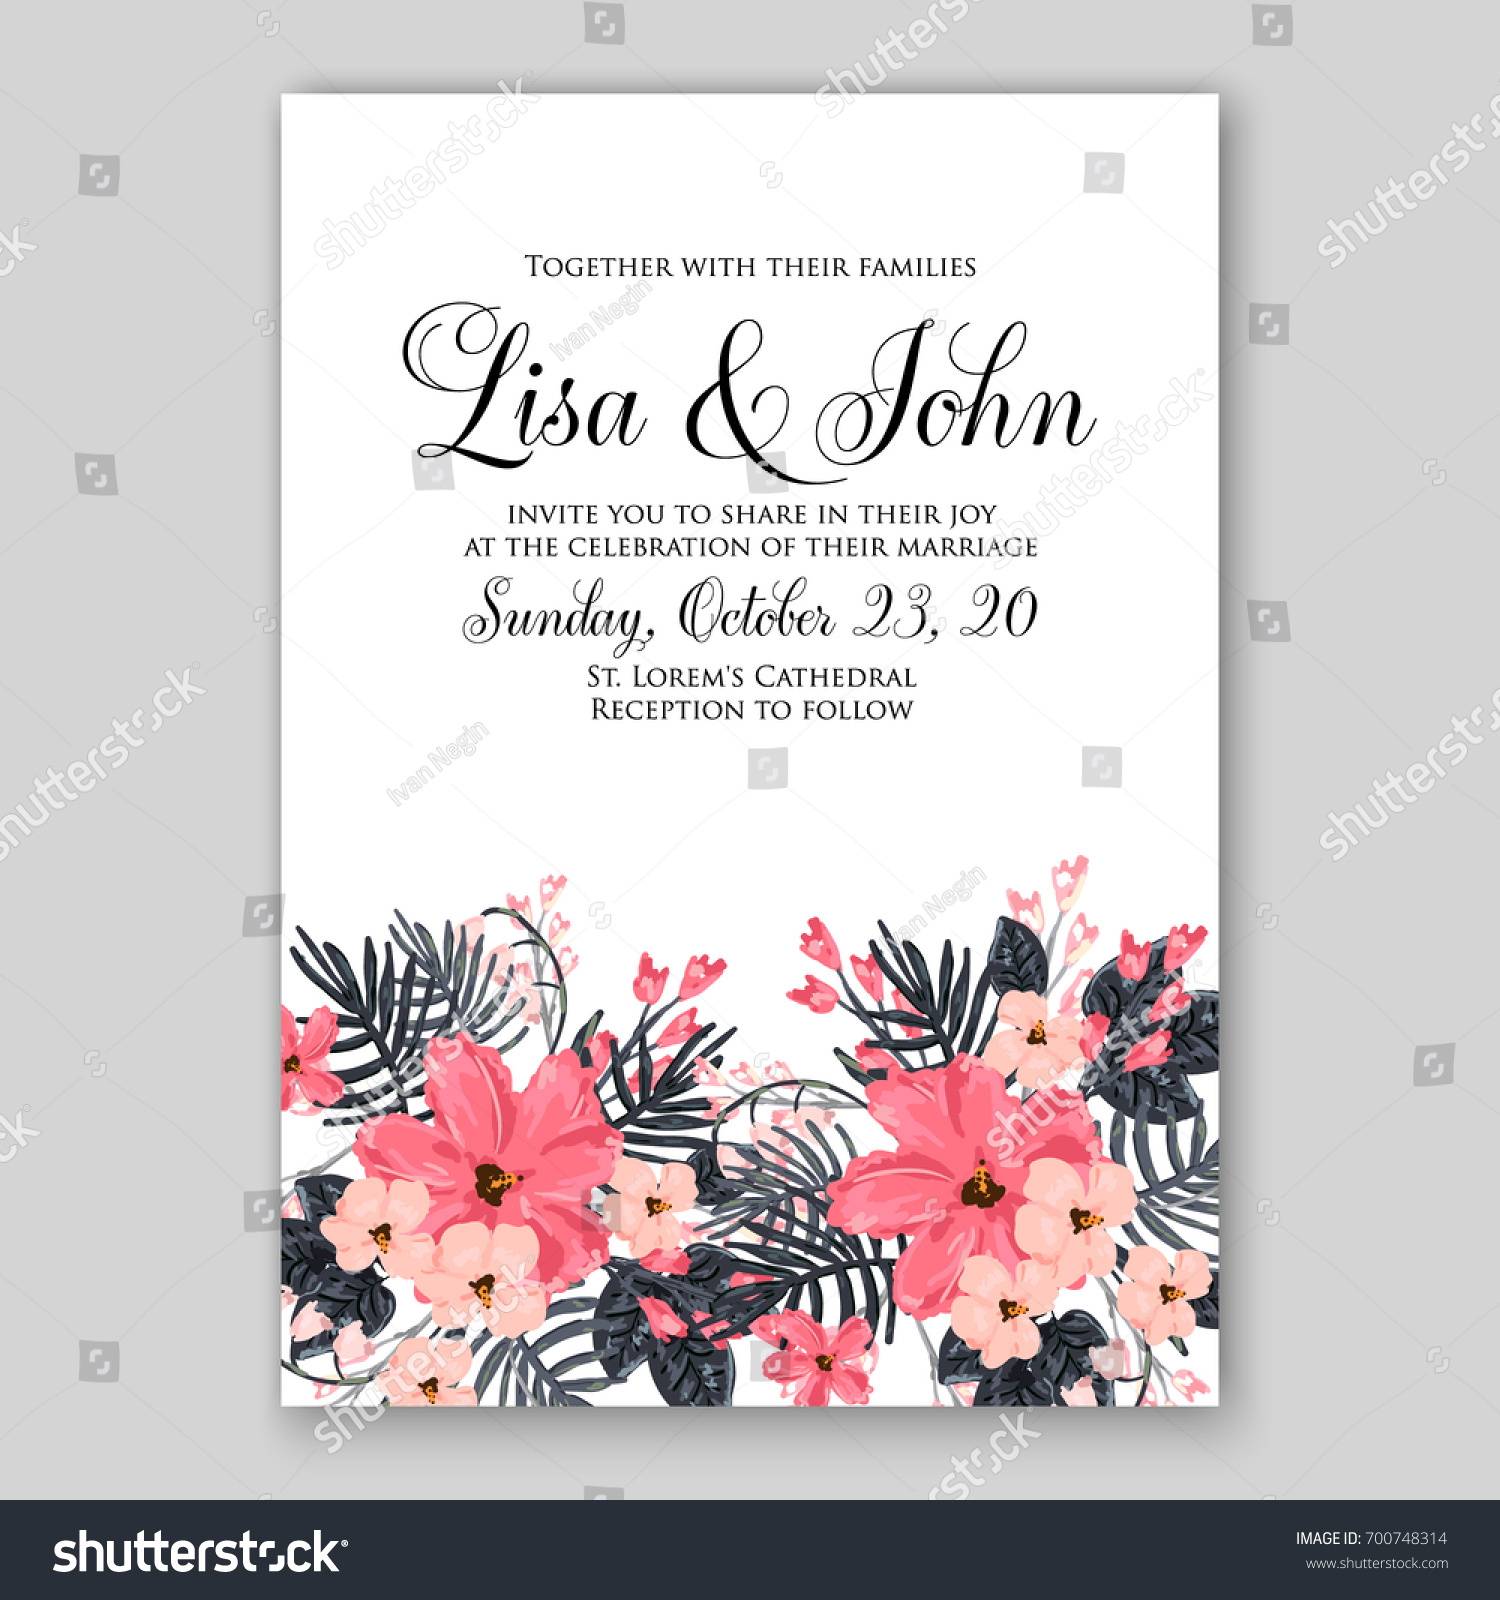 Wedding Invitation Card Tropical Floral Background Stock Vector HD ...